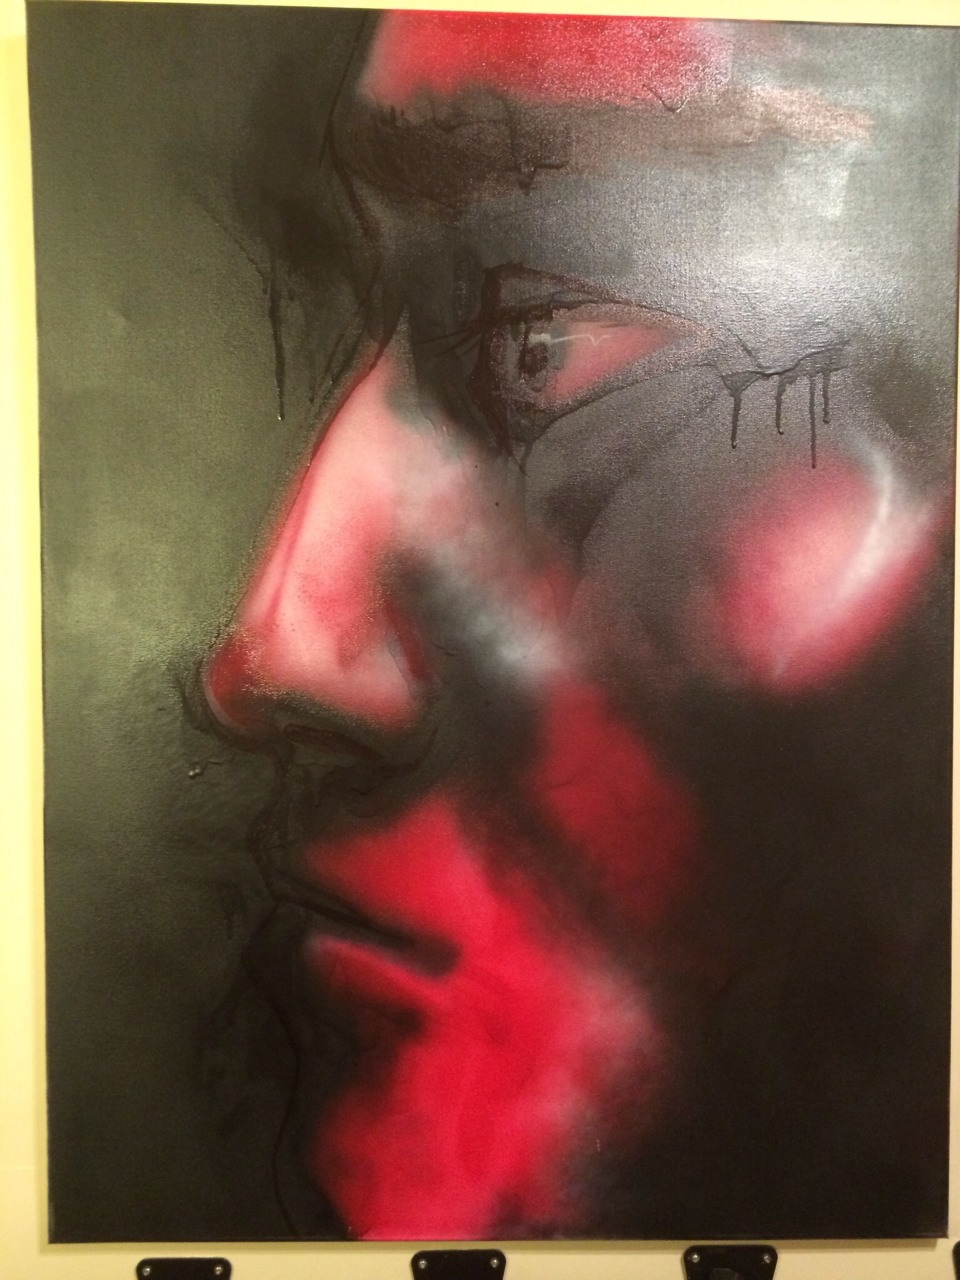 This is a painting I did for my recording studio. It's spray paint and marker on canvas.